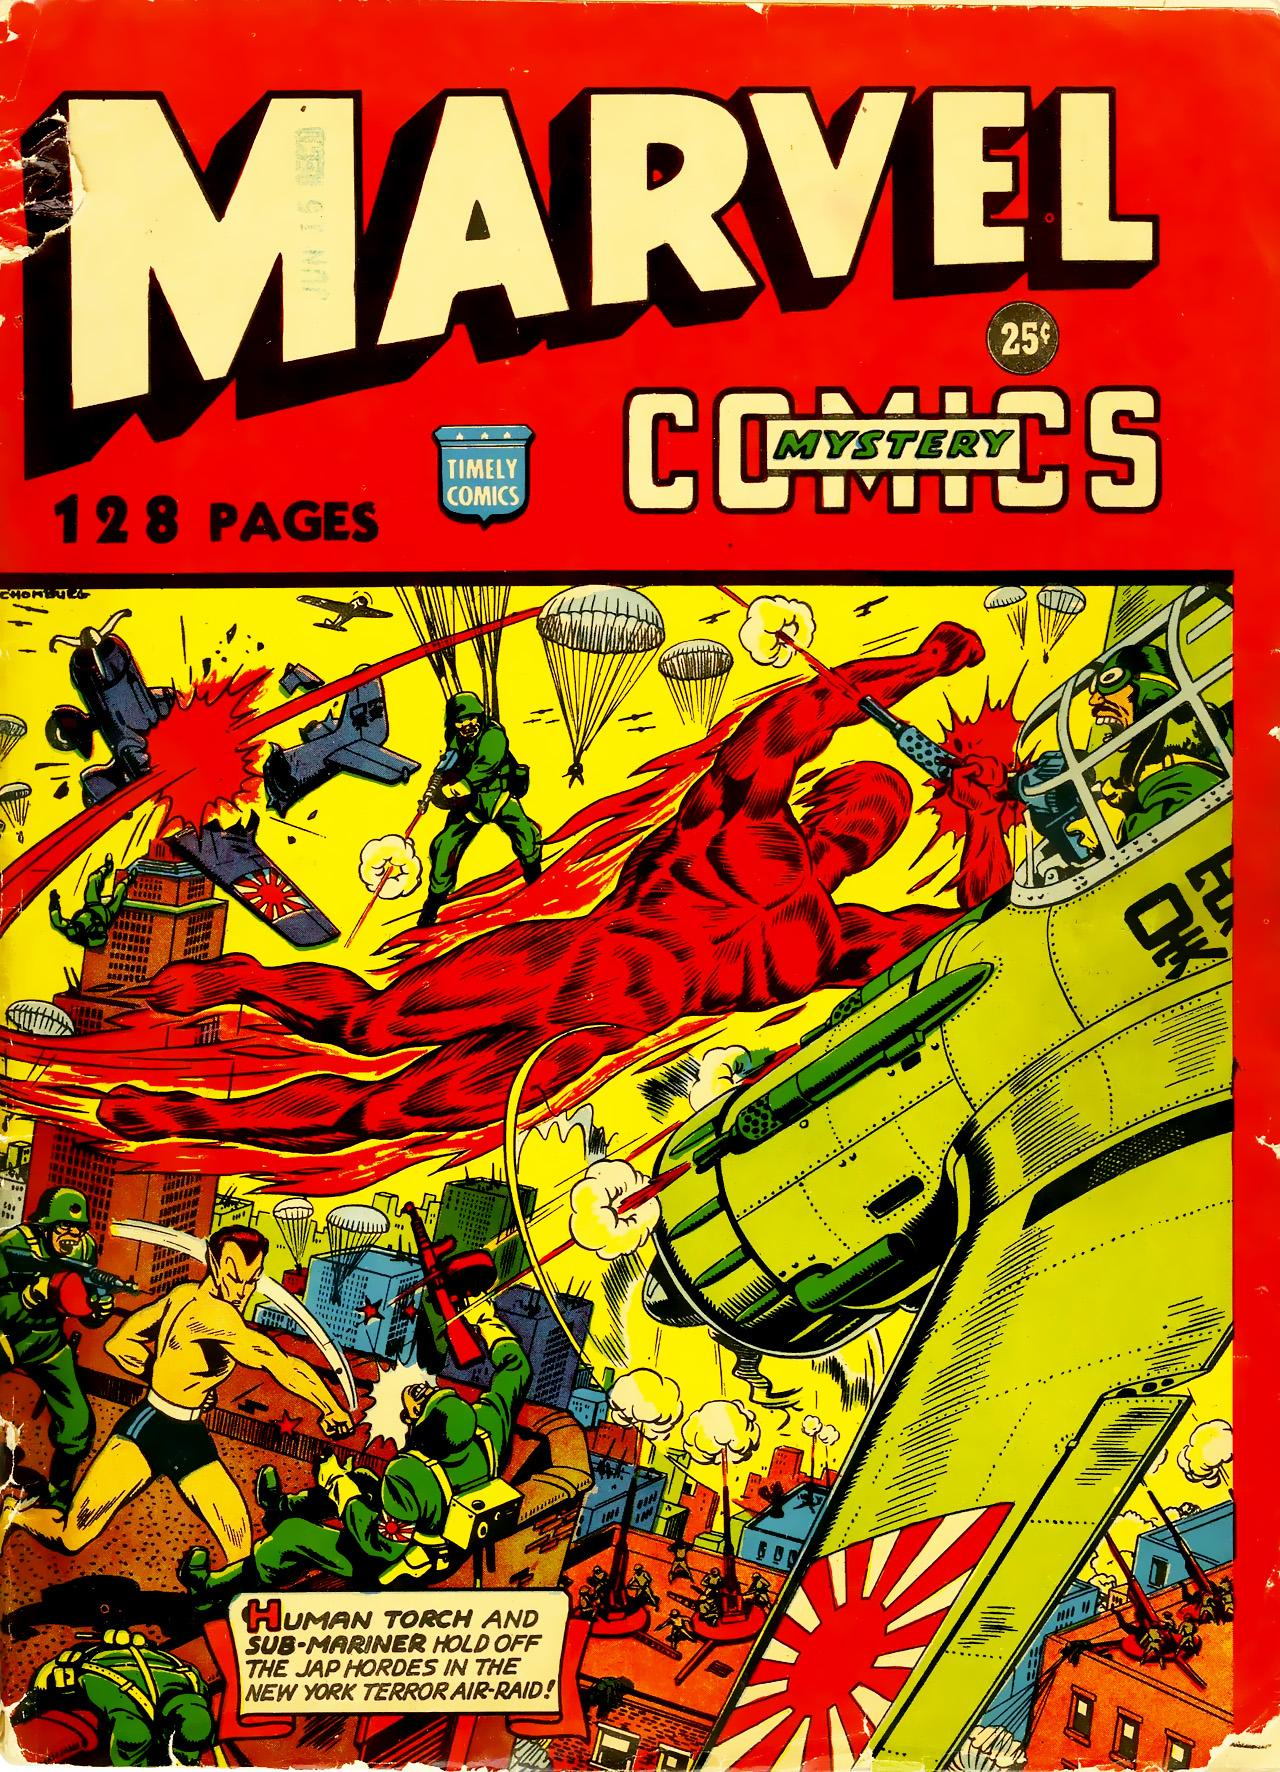 Marvel Mystery Comics Vol 1 NN